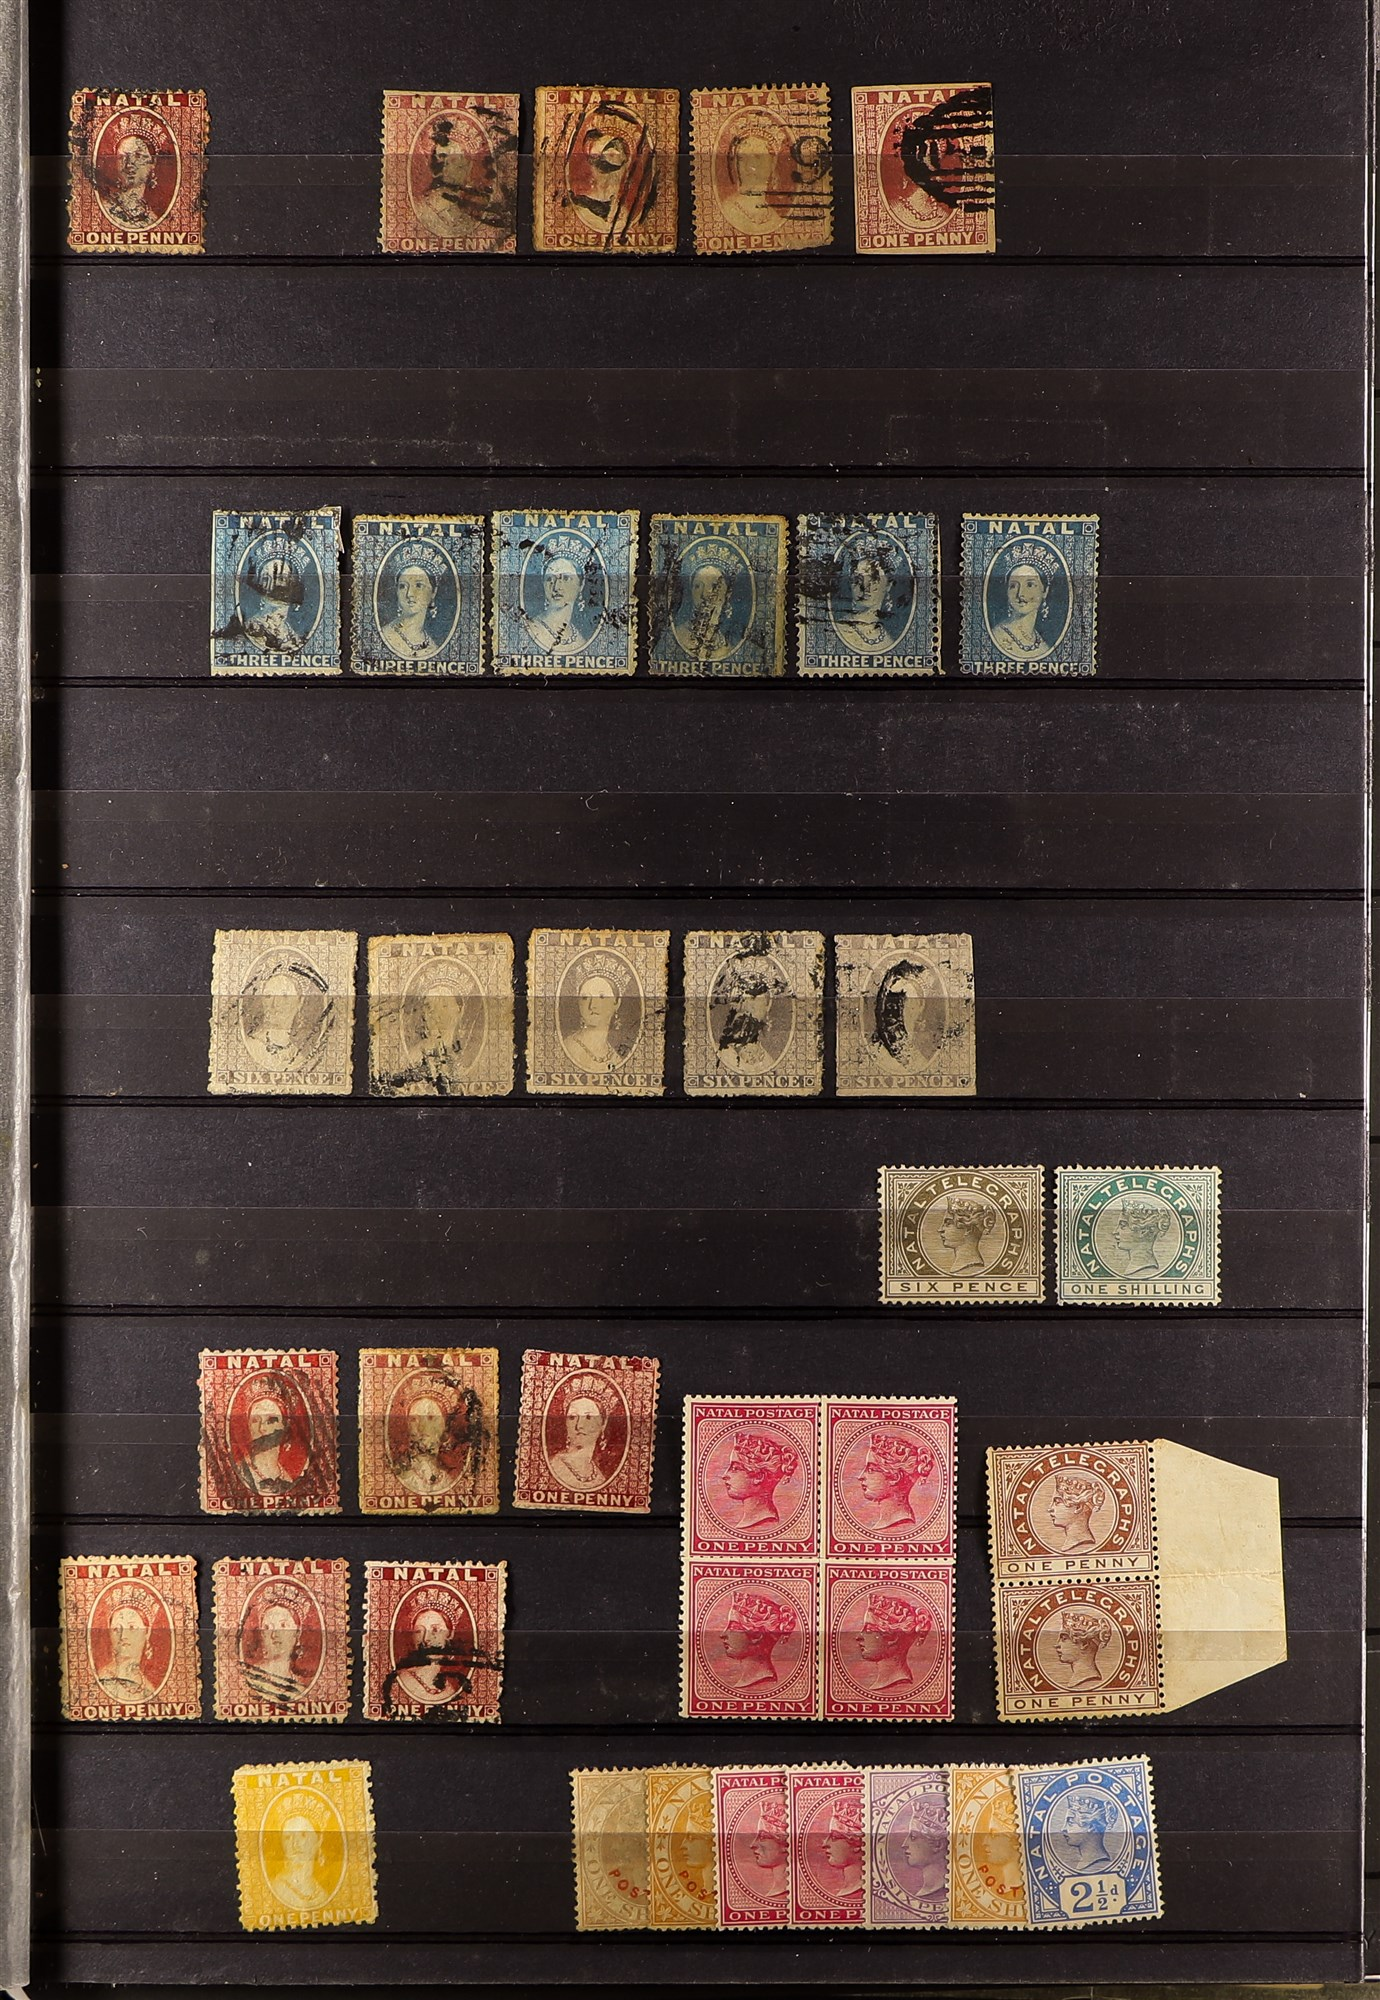 SOUTH AFRICA -COLS & REPS NATAL 1859-1899 collection with values to 5s (mostly used), 1860 rough - Image 2 of 4